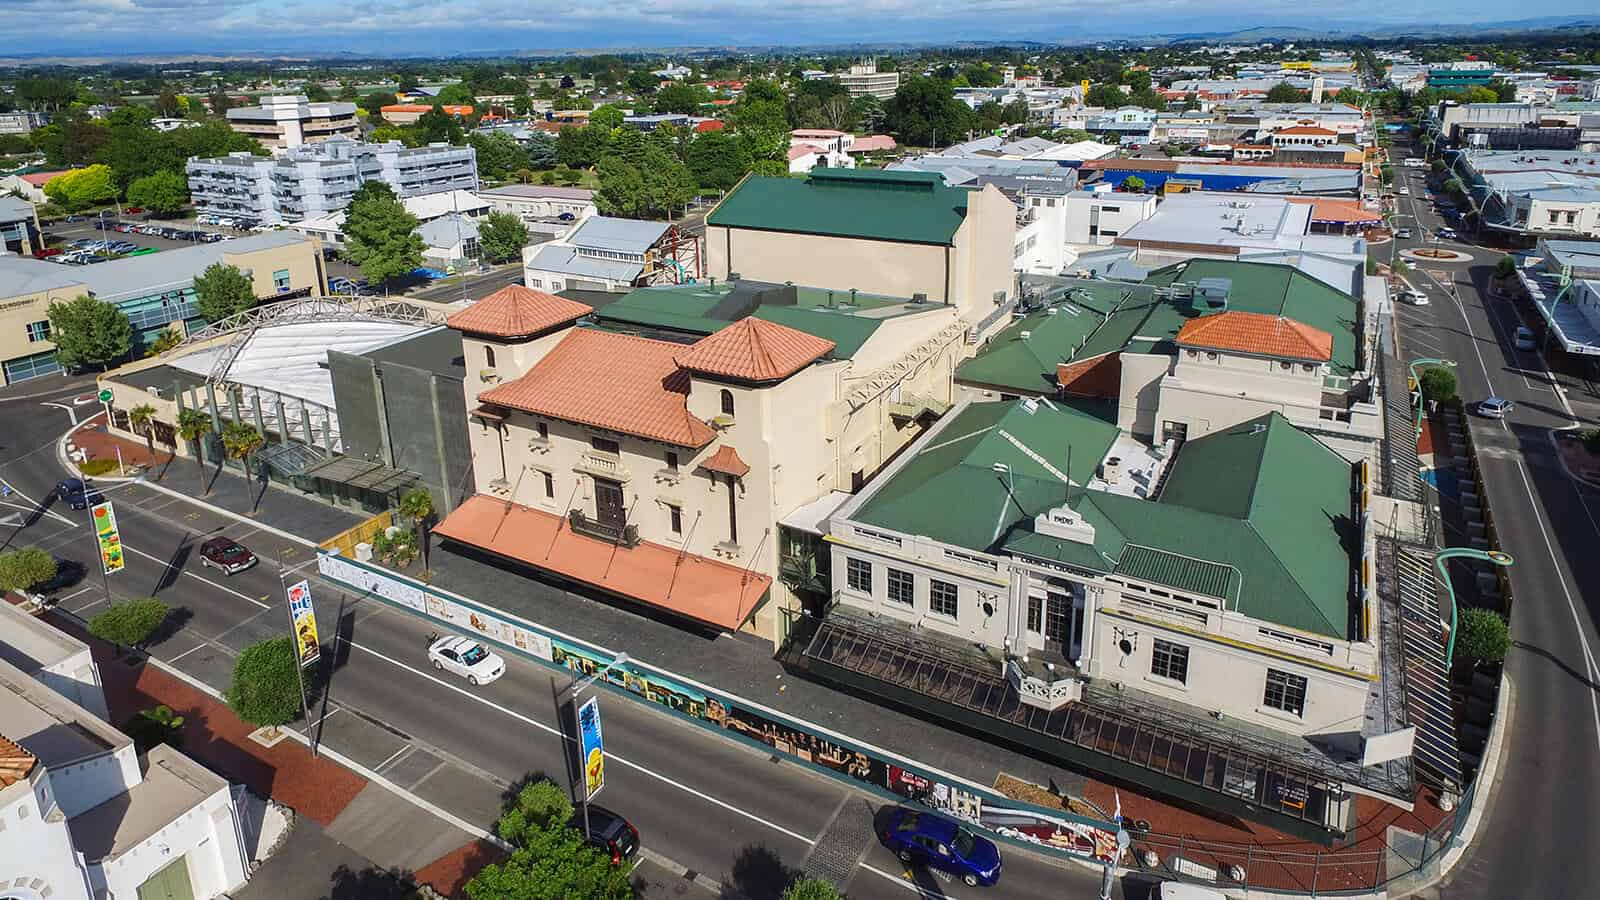 Strengthening Opera House comes first in HDC proposal